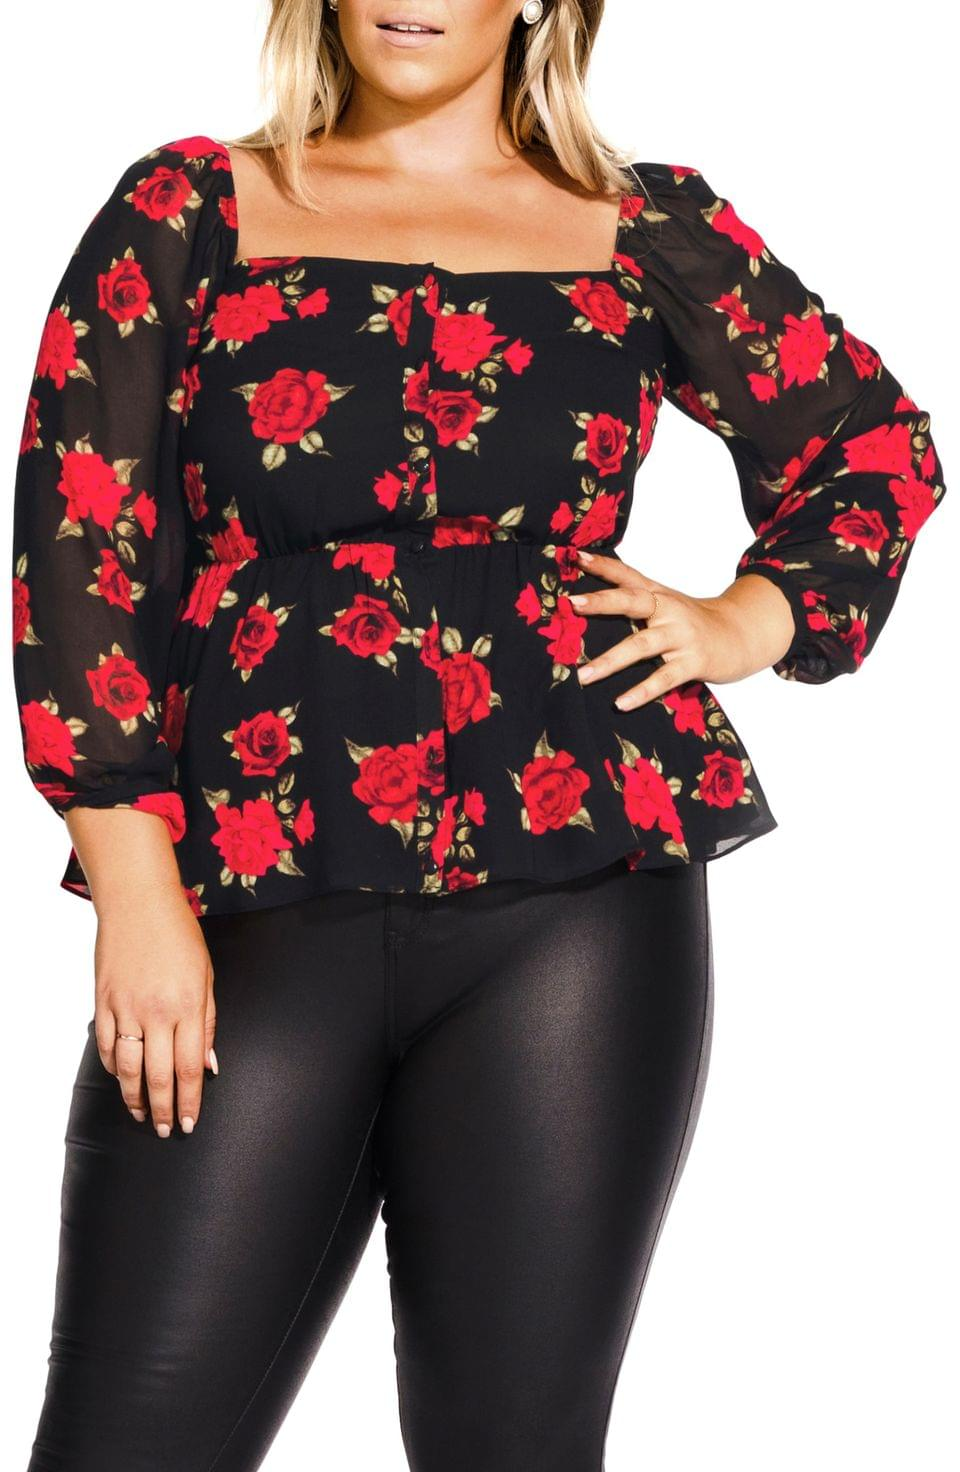 Women's City Chic Floral Passion Top (Plus Size)